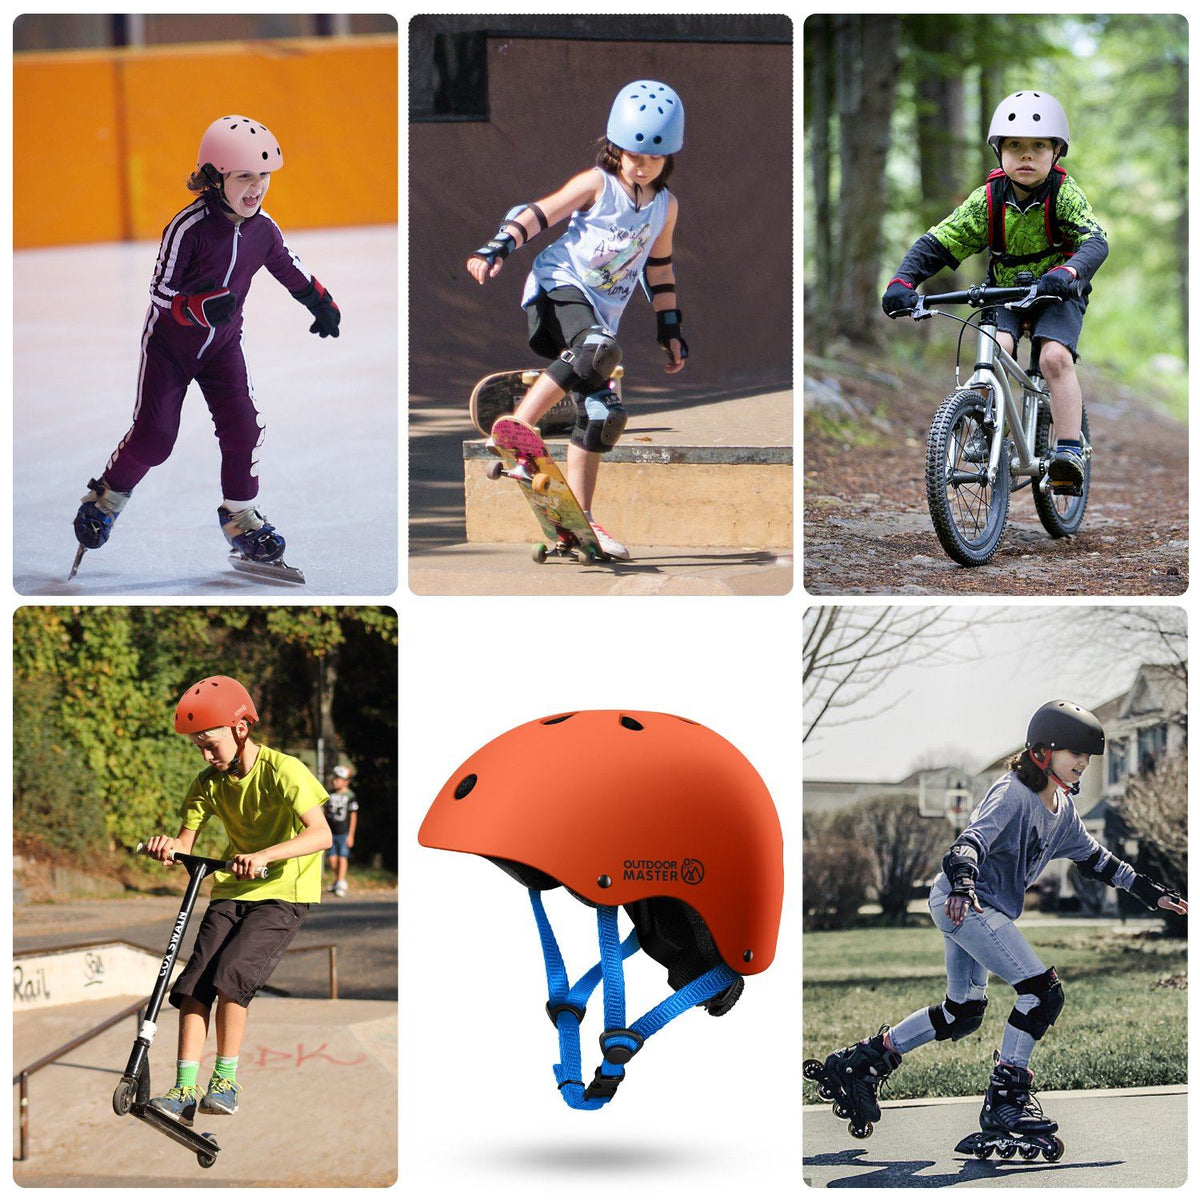 SPRING BUNDLE SALES - KIDS SKATEBOARD HELMET AND GEARS Bundle OutdoorMaster